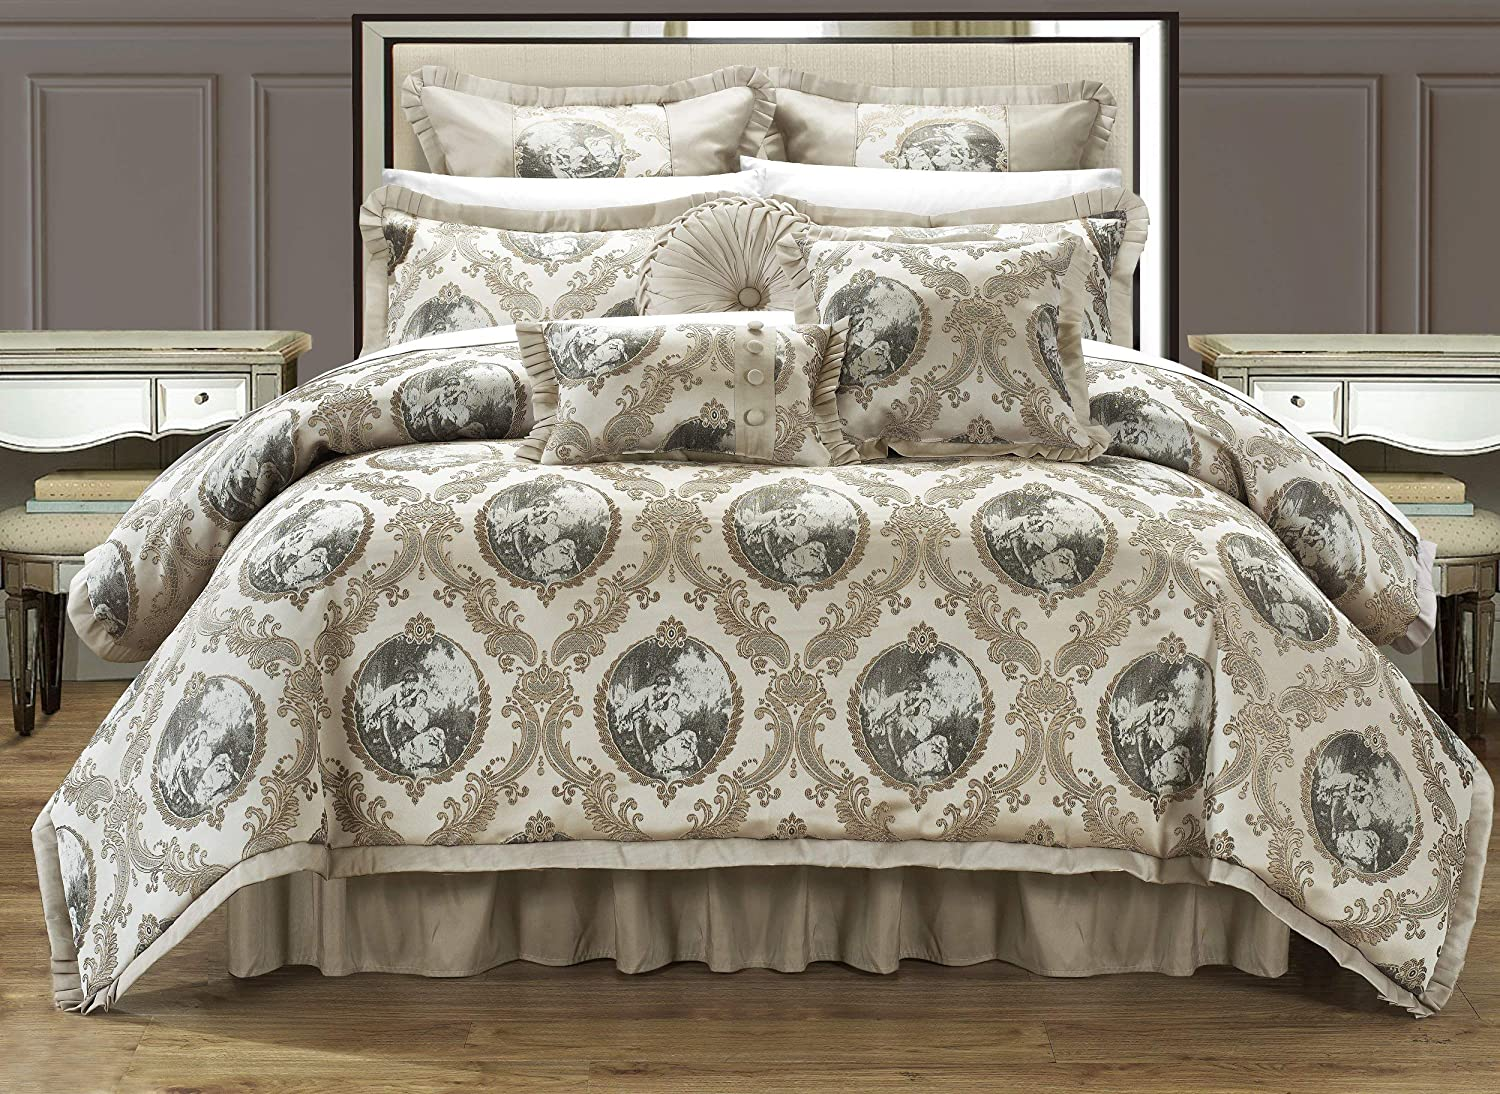 Amazon Com Chic Home 9 Piece Romeo And Juliet Decorator Upholstery Comforter Set With Pillows Ensemble King Beige Home Kitchen